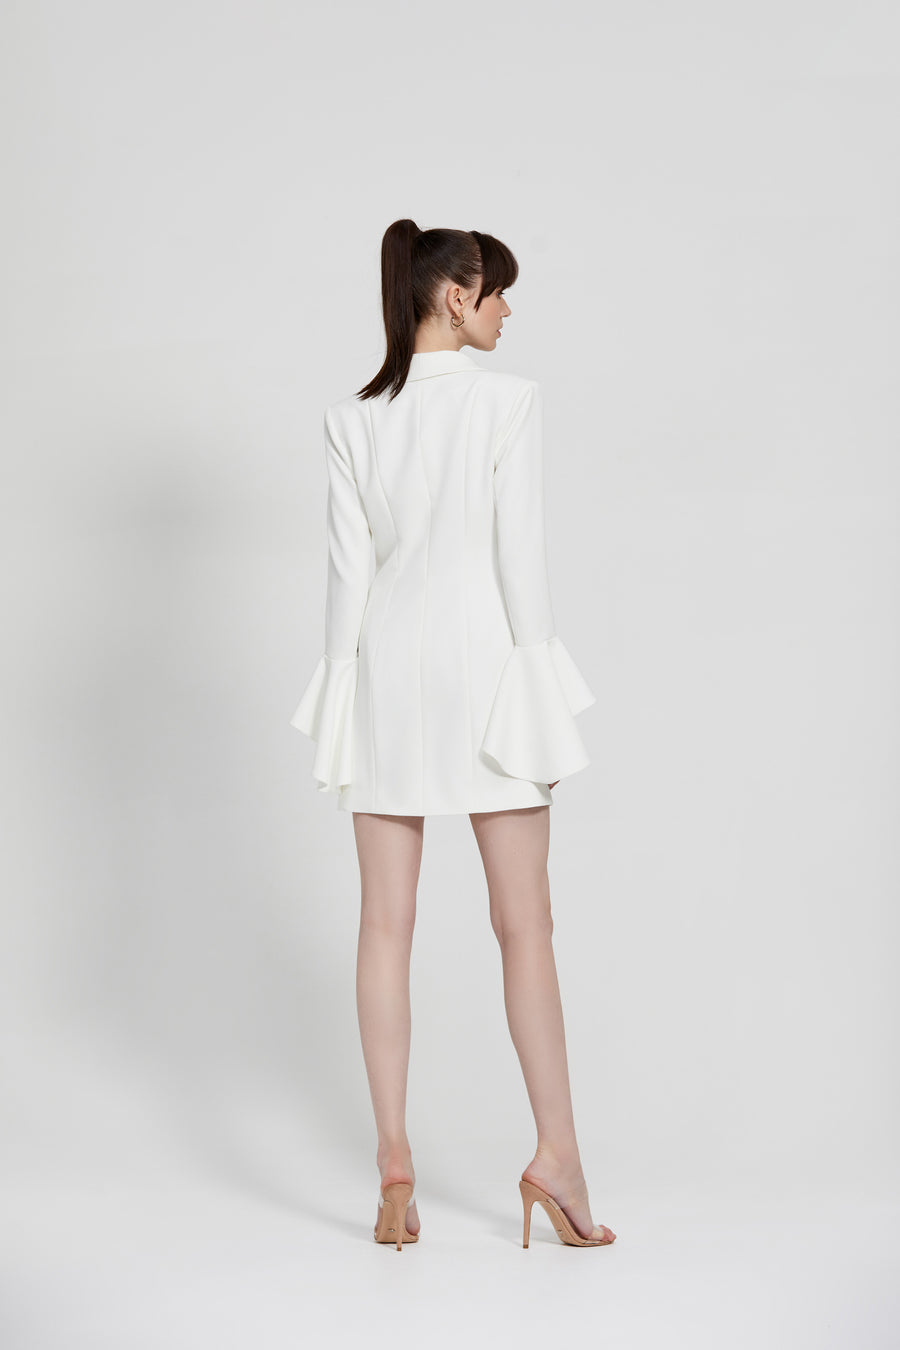 Arjana Jacket Dress - White